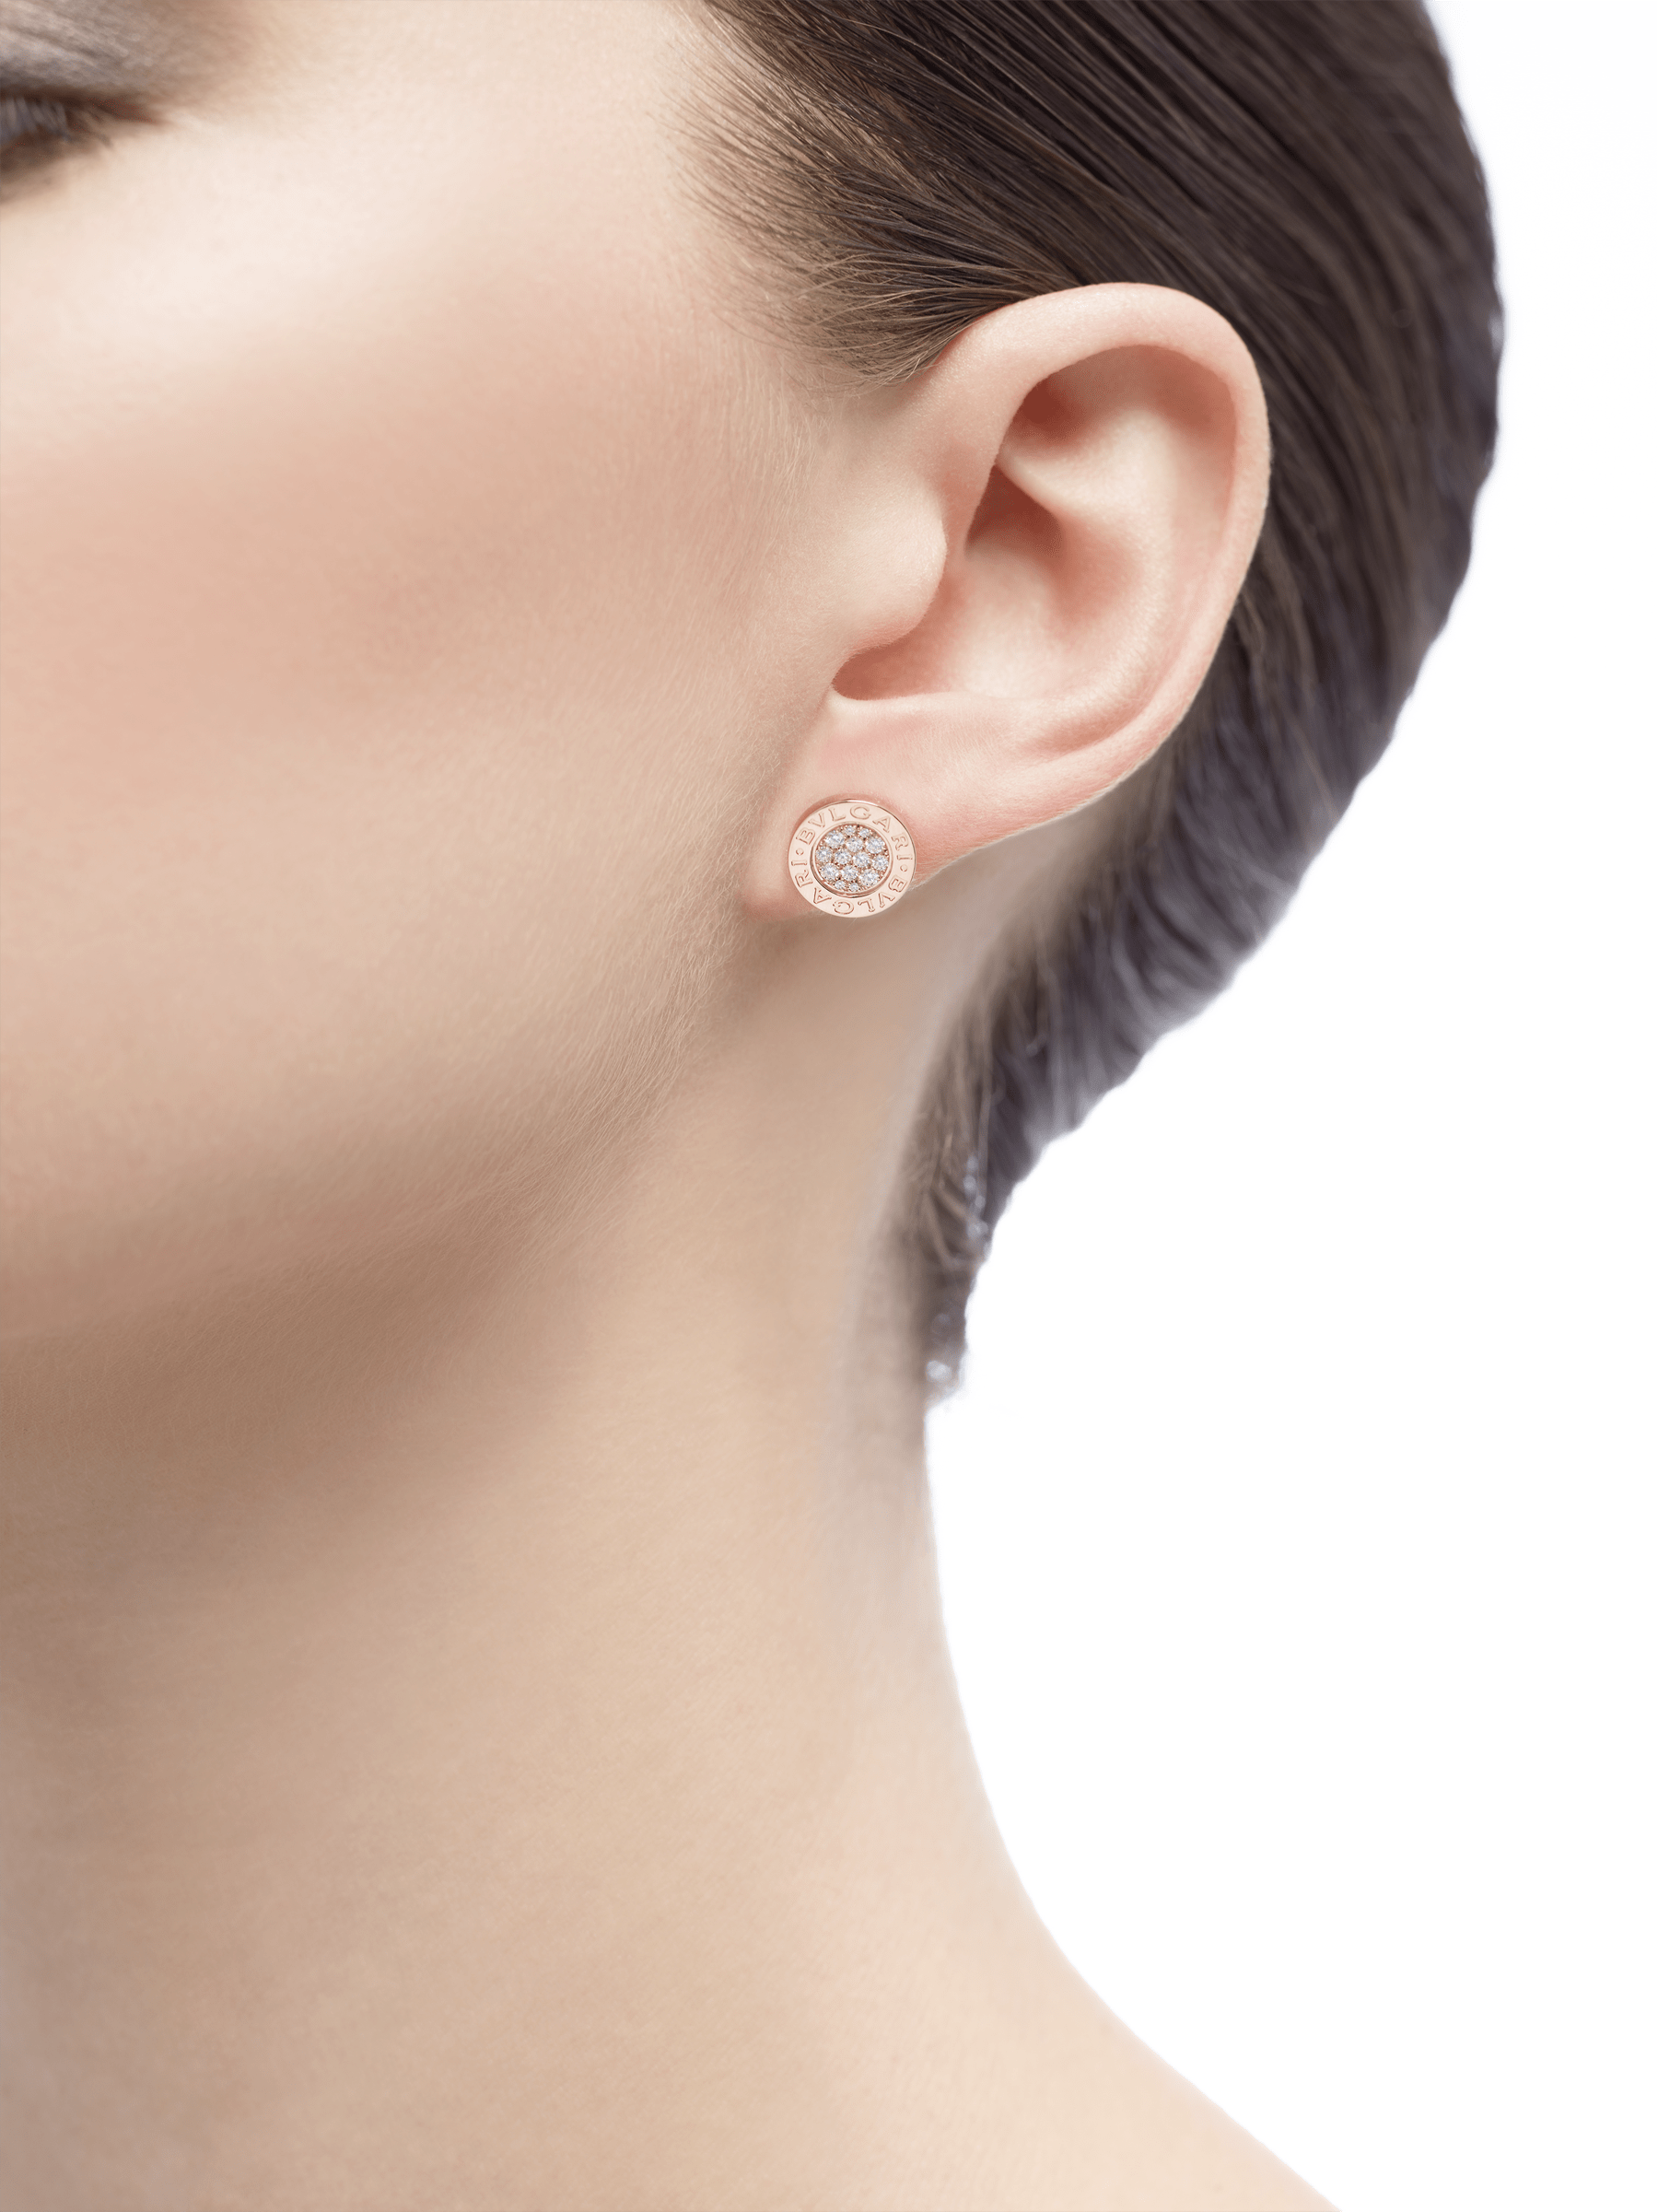 Boucle d'oreille unique BVLGARI BVLGARI en or rose 18 K pavé diamants 354731 image 3